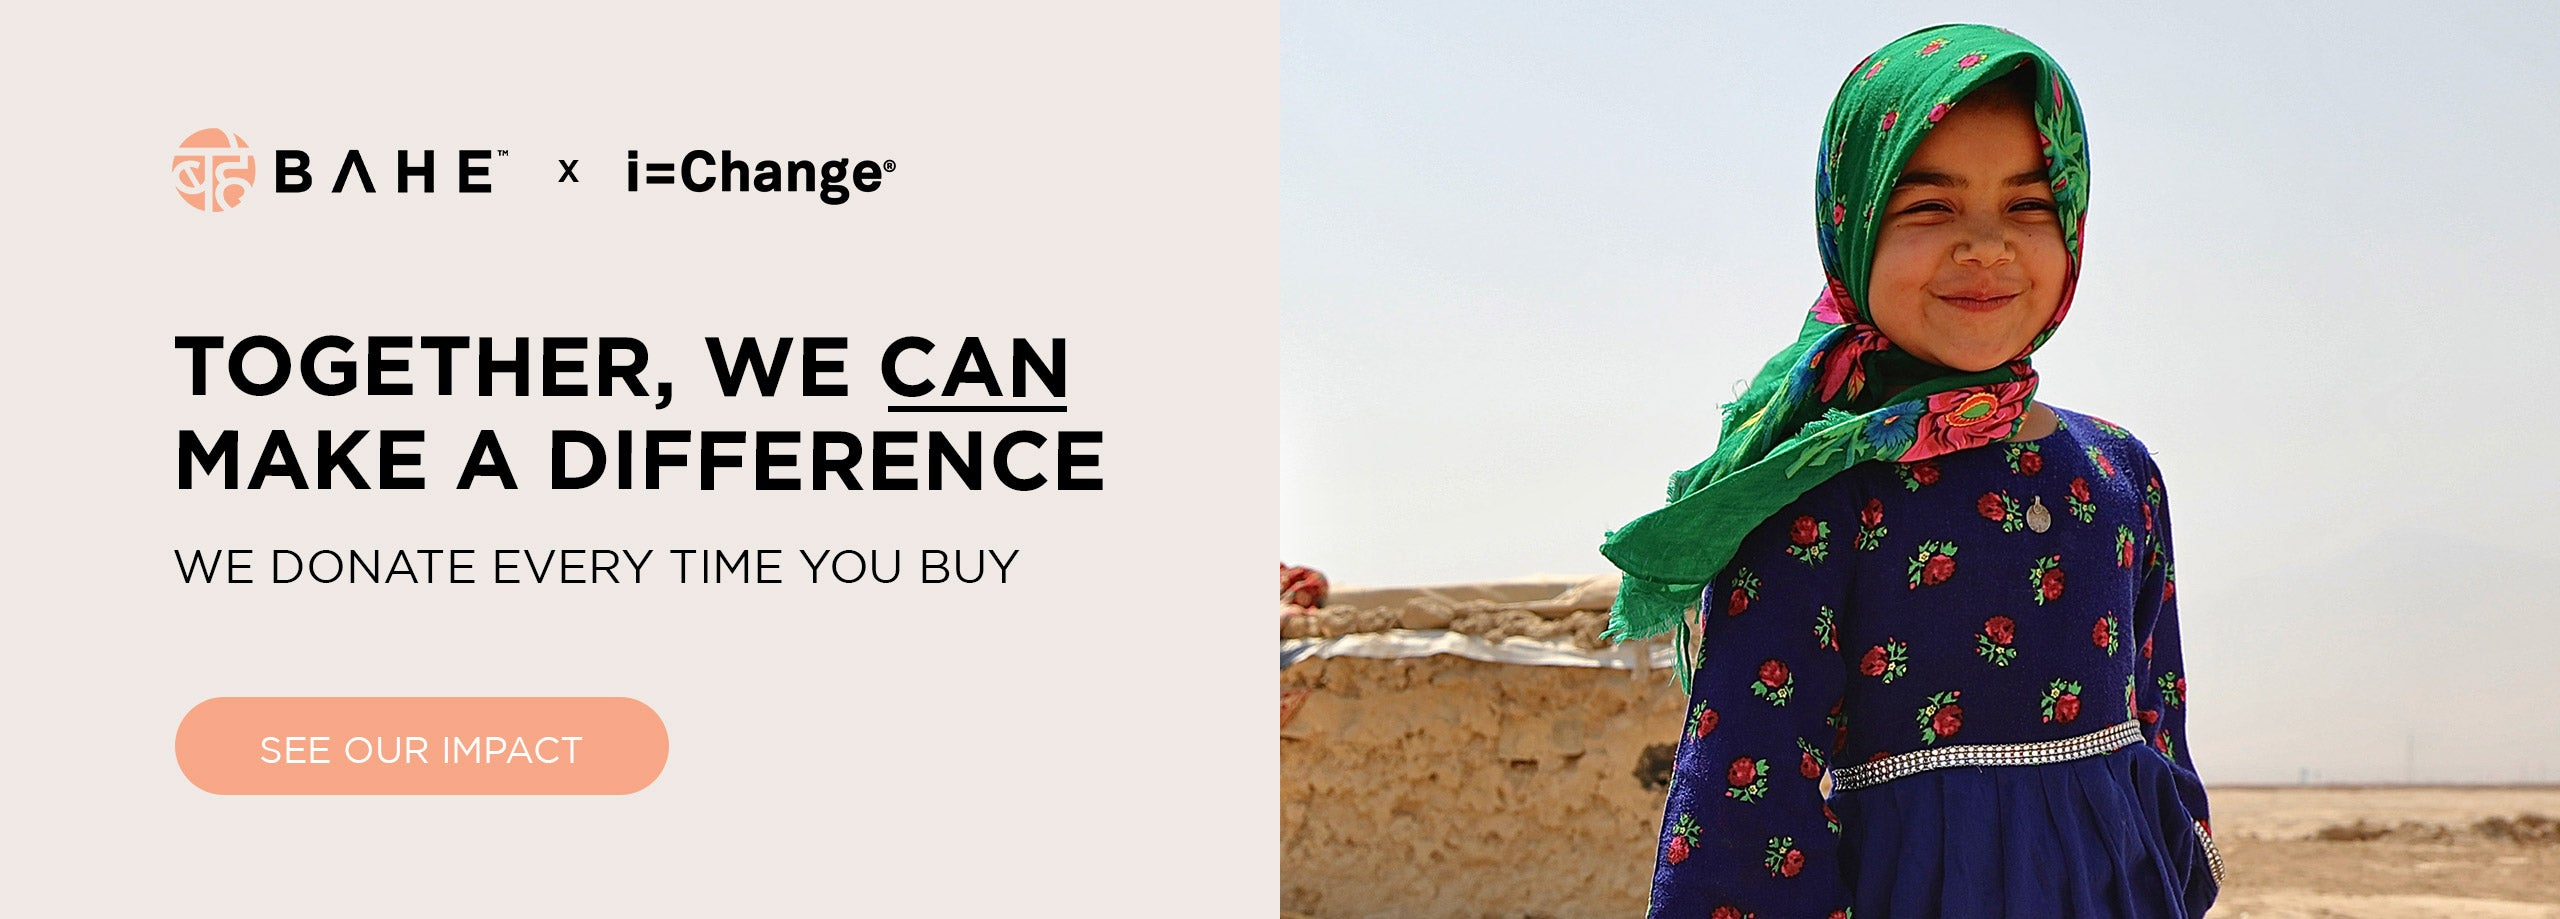 """PTP x I=Change""""></a></p> <p>We donate $1 to a charity of your choice every time you make a purchase on this site.</p> <p>We are extremely proud to announce that we've partnered with I=Change to donate $1 for every transaction made on this site. Every single time you but you can make a difference to someone's life.</p>"""